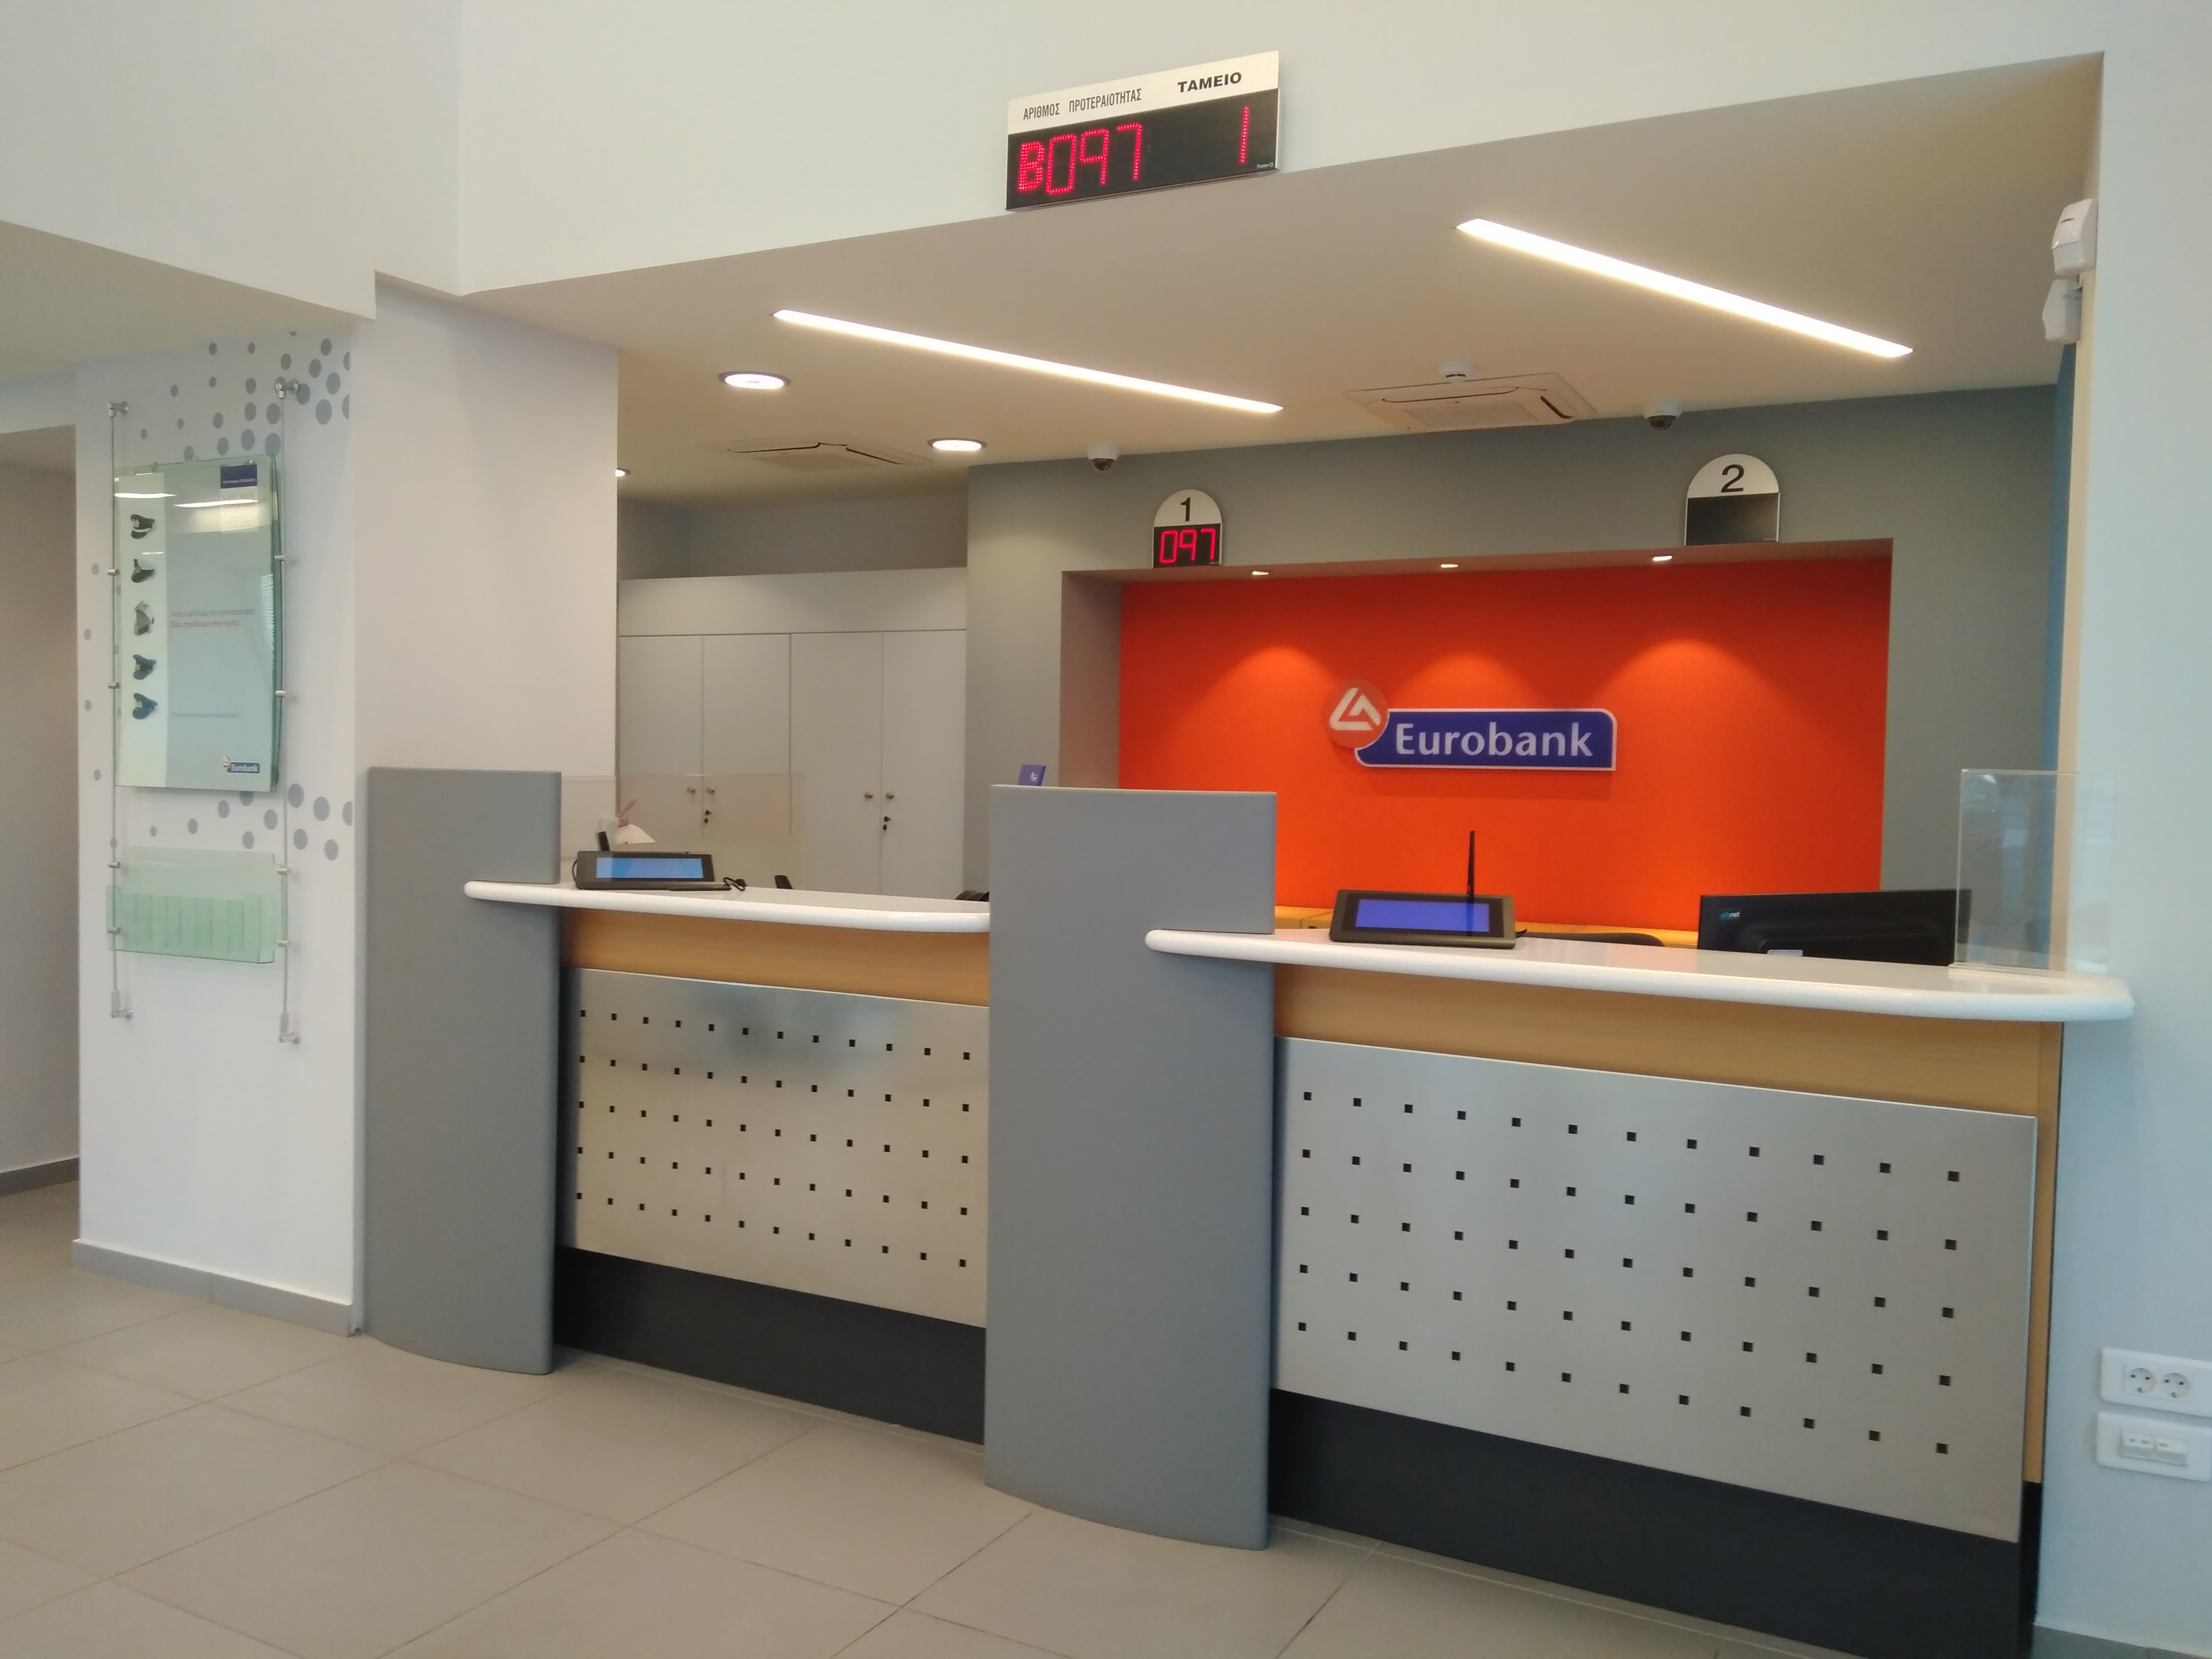 Renovation and extension of Eurobank's branch in Serres